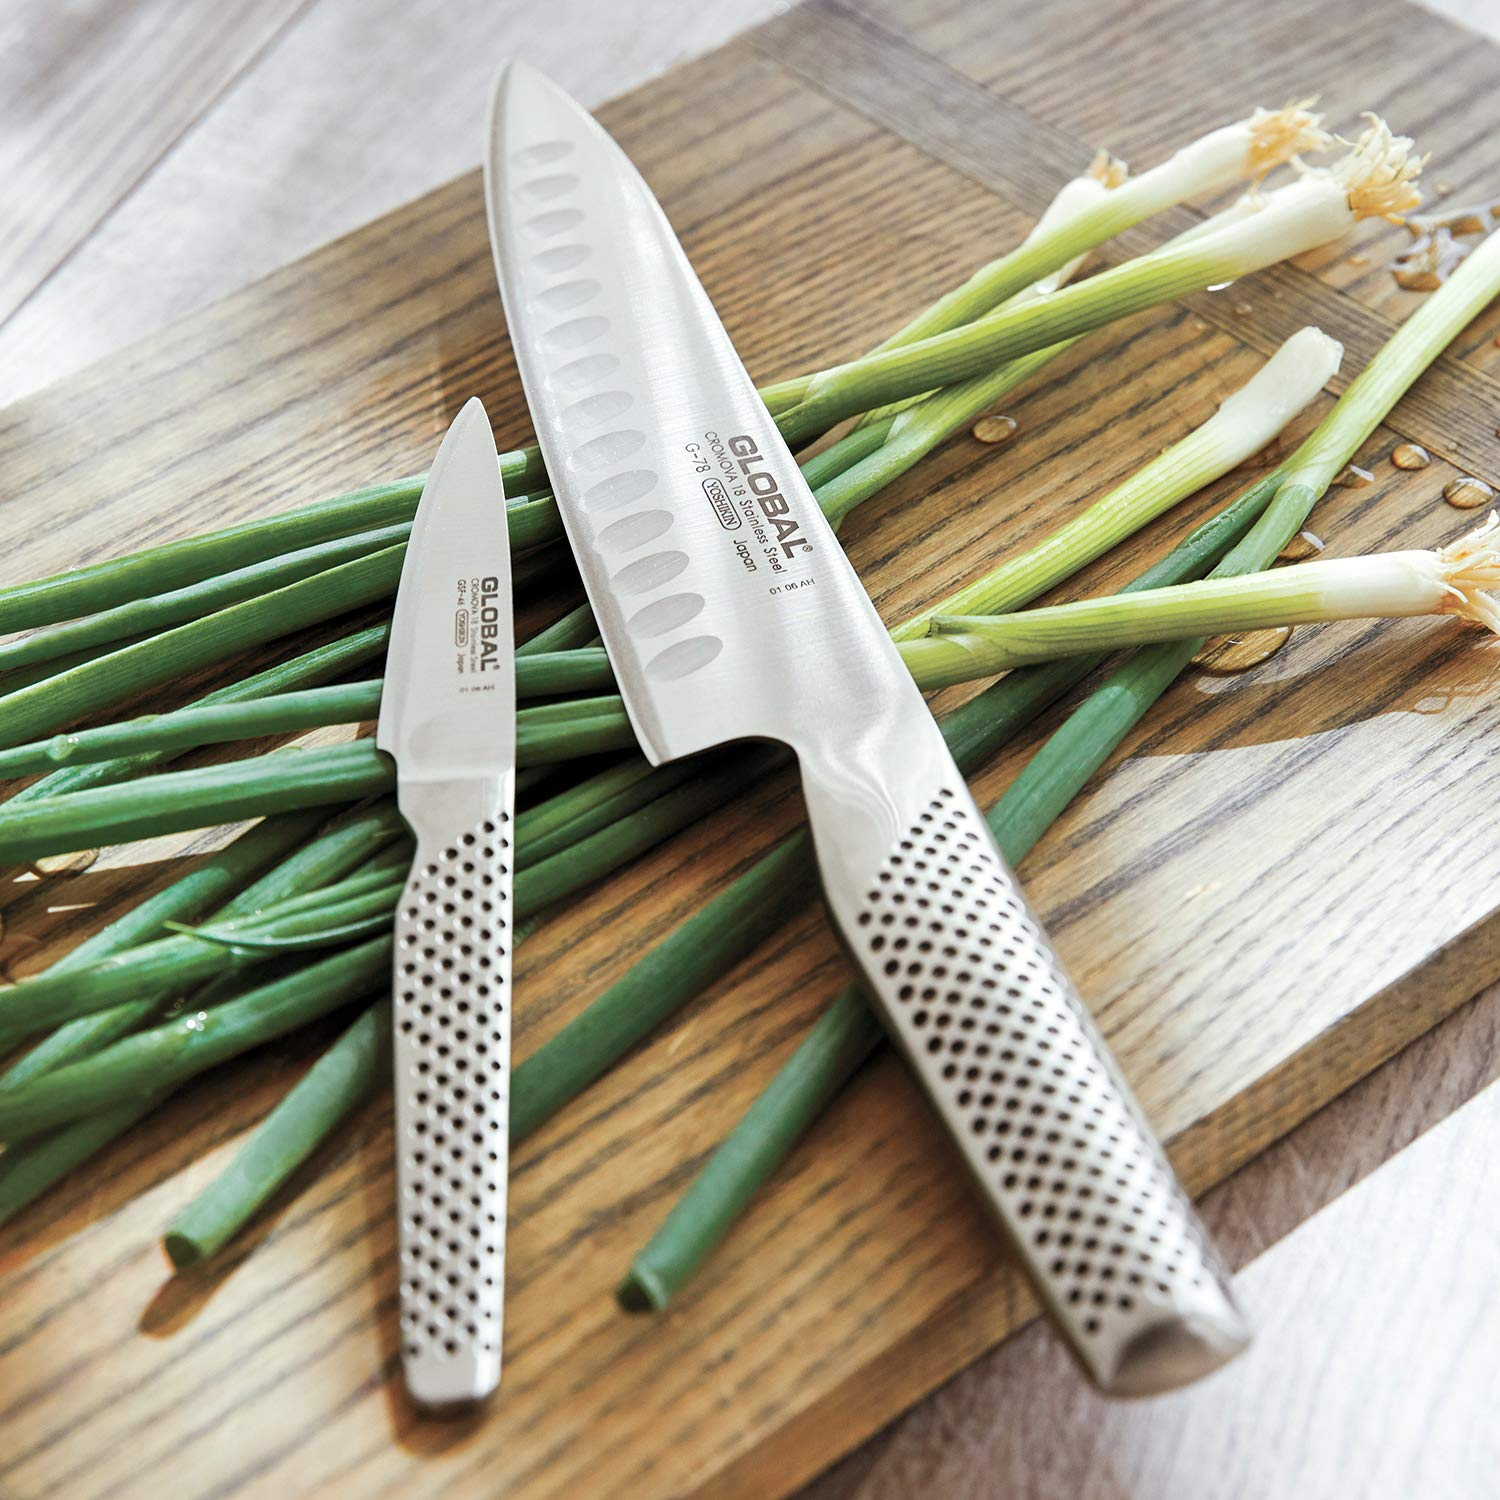 Global 8541908688 2 Piece Knife Set, 2.3, Silver by Global